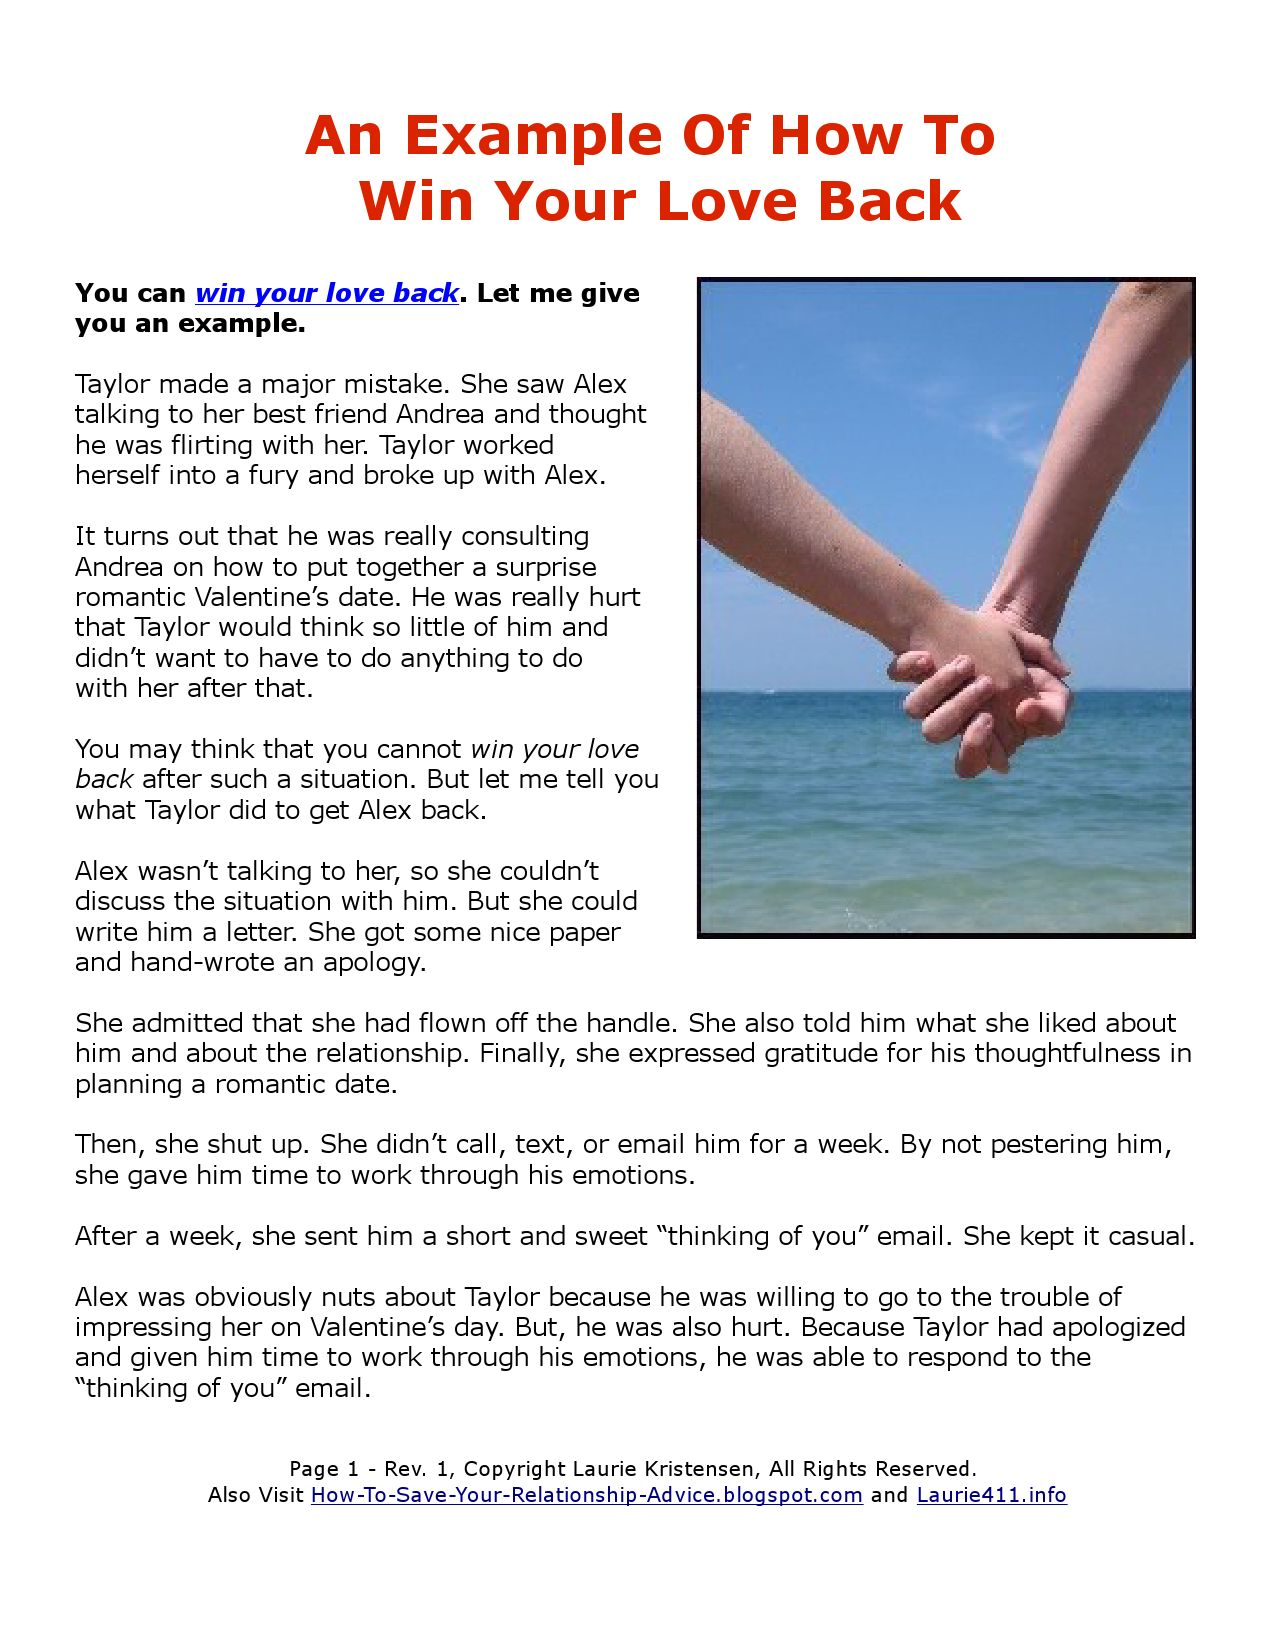 how to win your love back